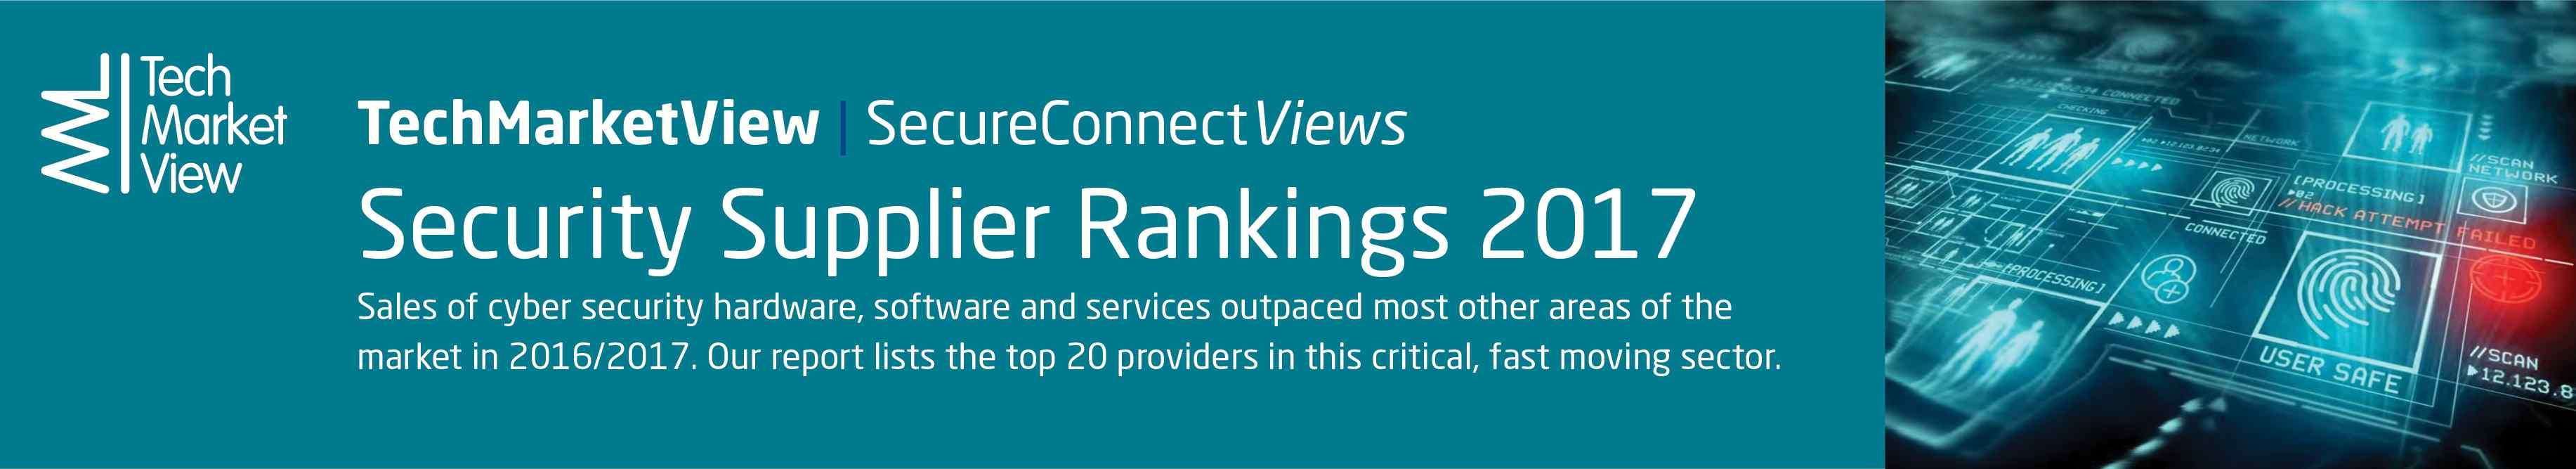 Security Infrastructure Supplier Rankings 2017